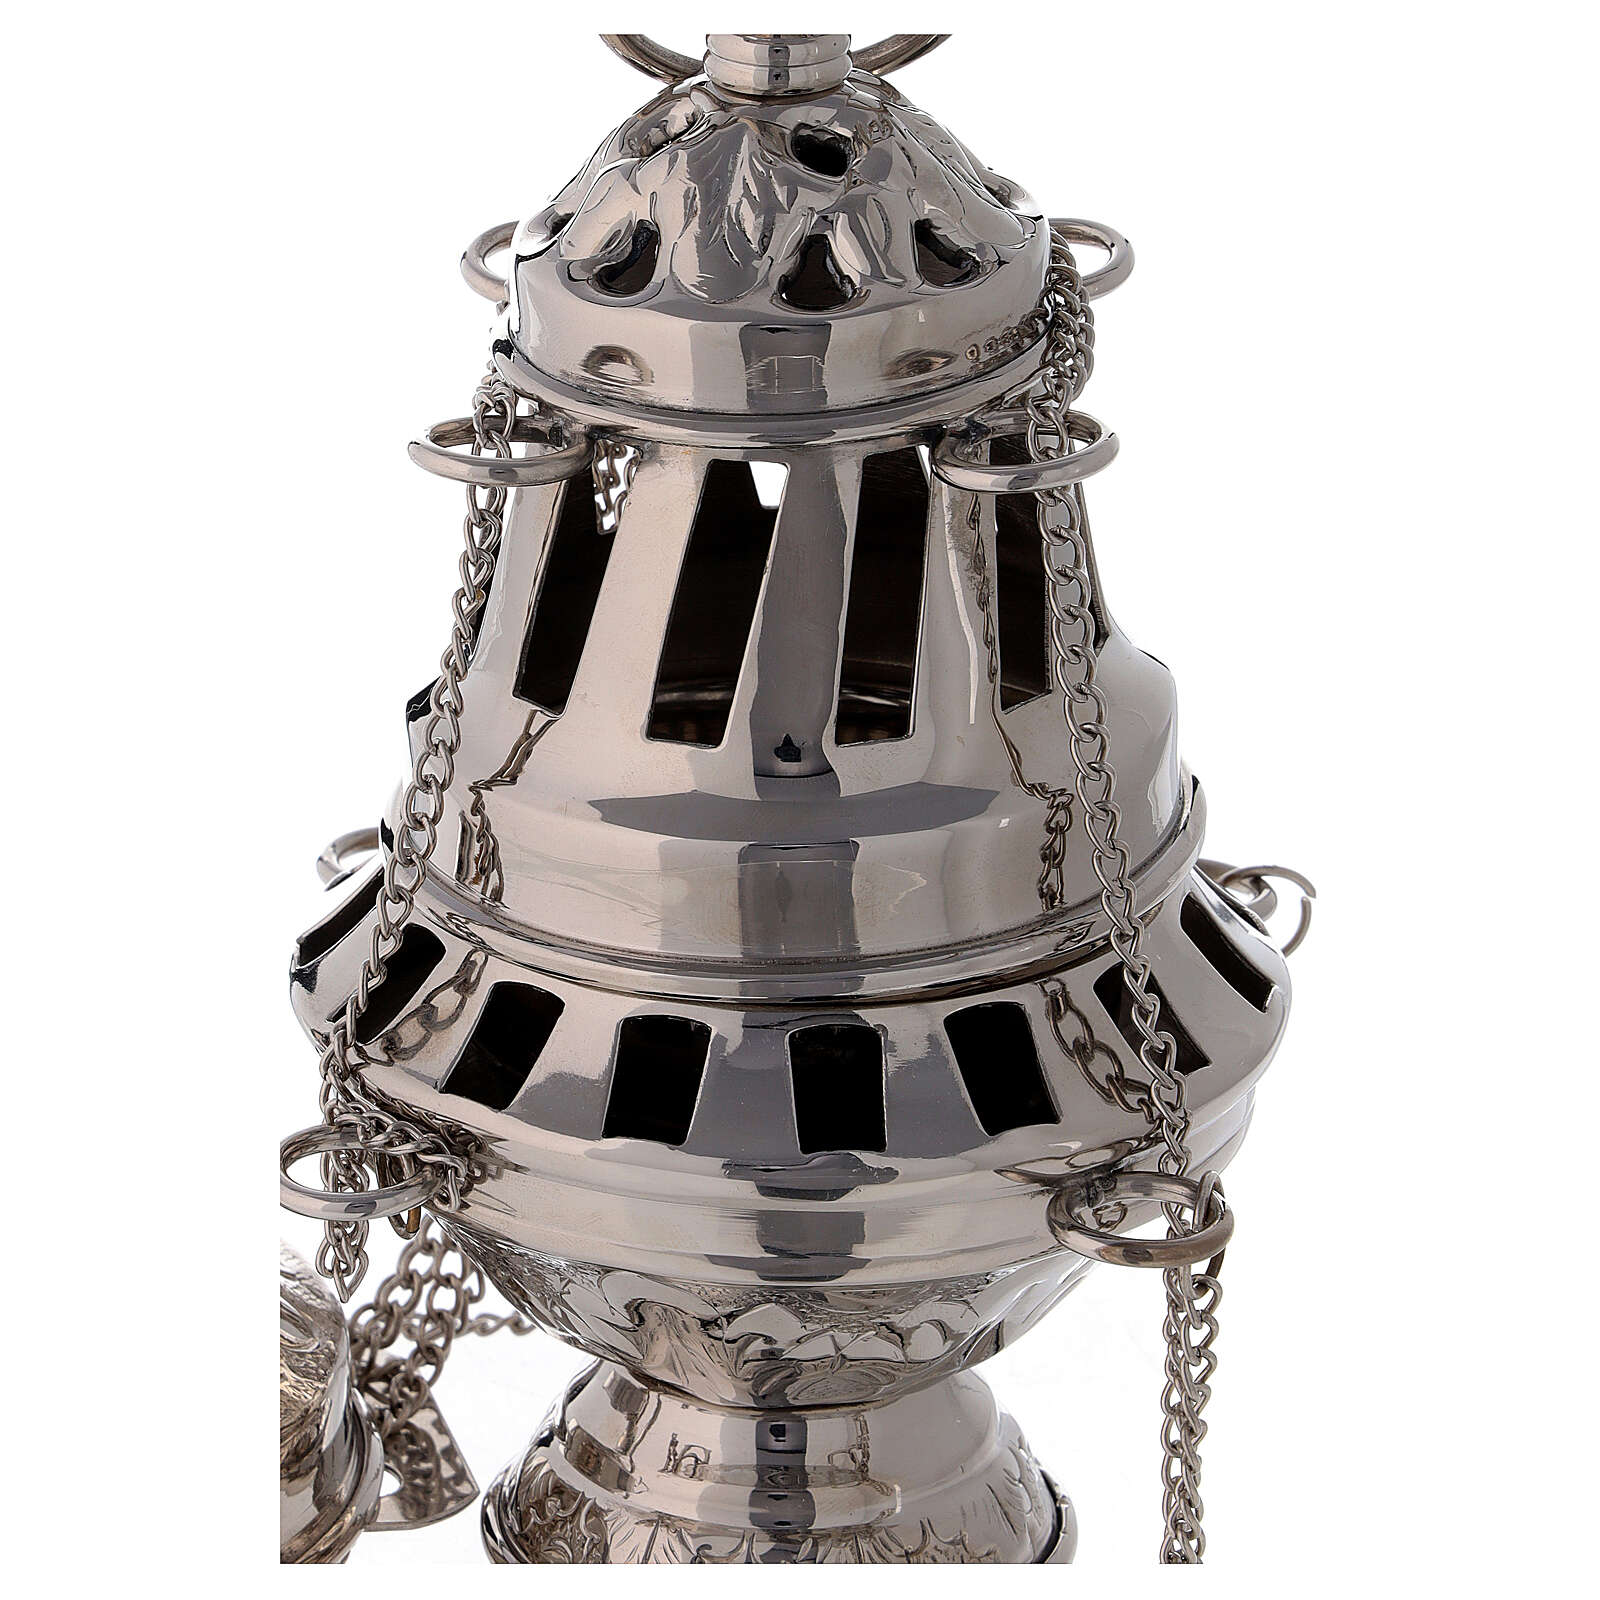 Santiago style thurible 6 1/4 in nickel-plated brass 3